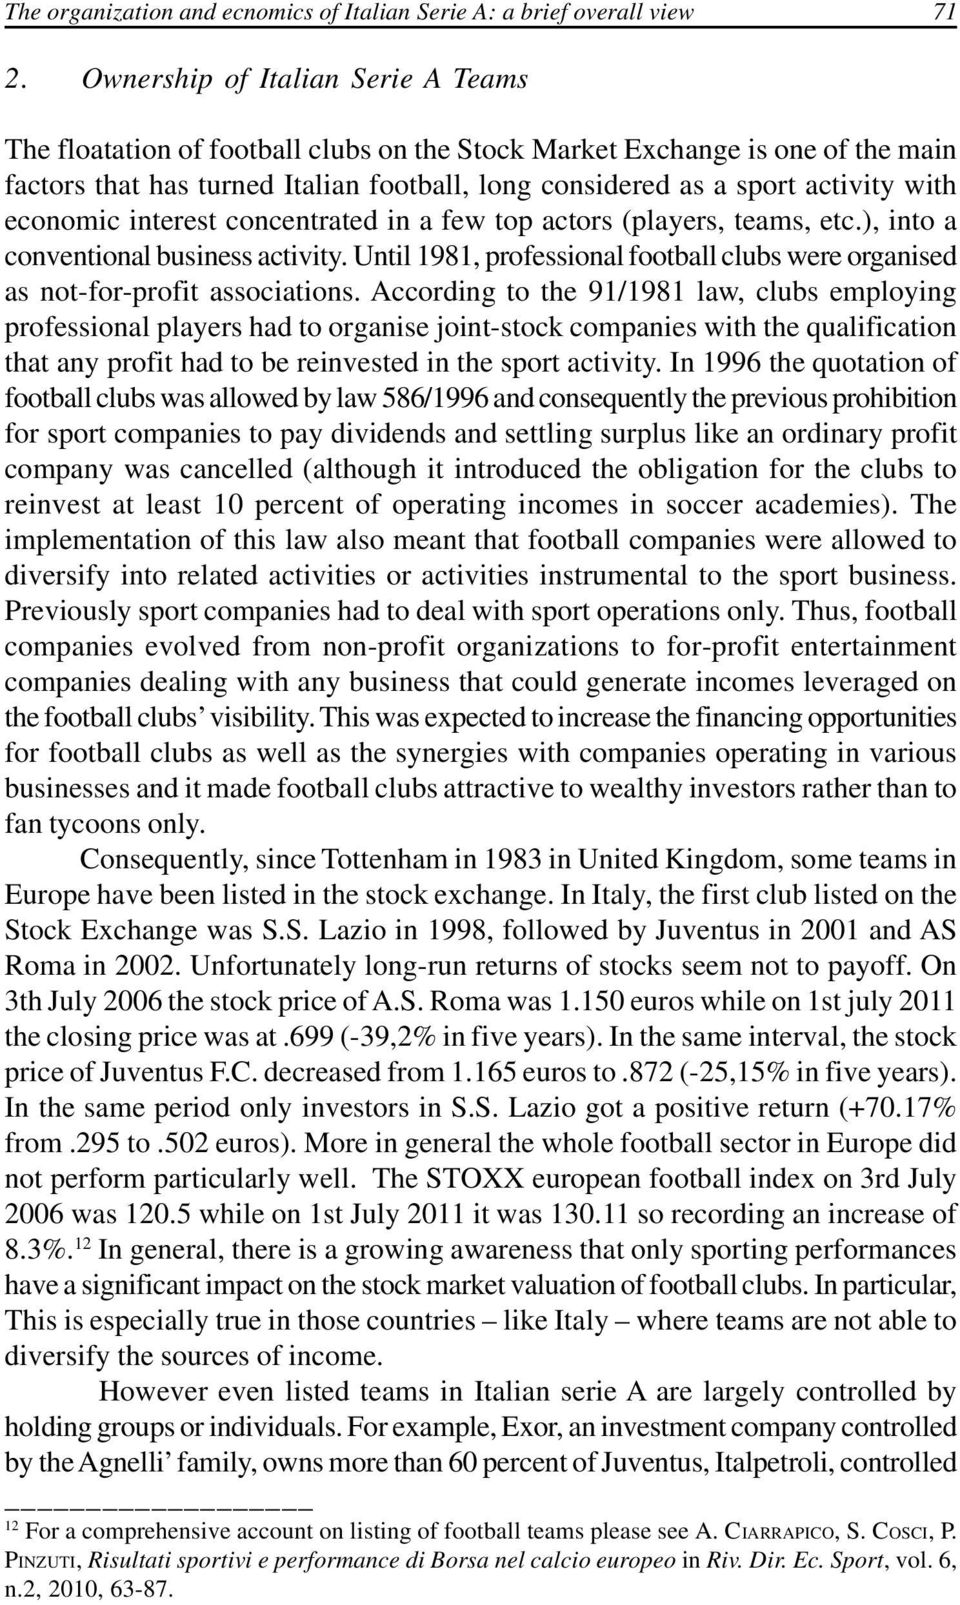 economic interest concentrated in a few top actors (players, teams, etc.), into a conventional business activity. Until 1981, professional football clubs were organised as not-for-profit associations.